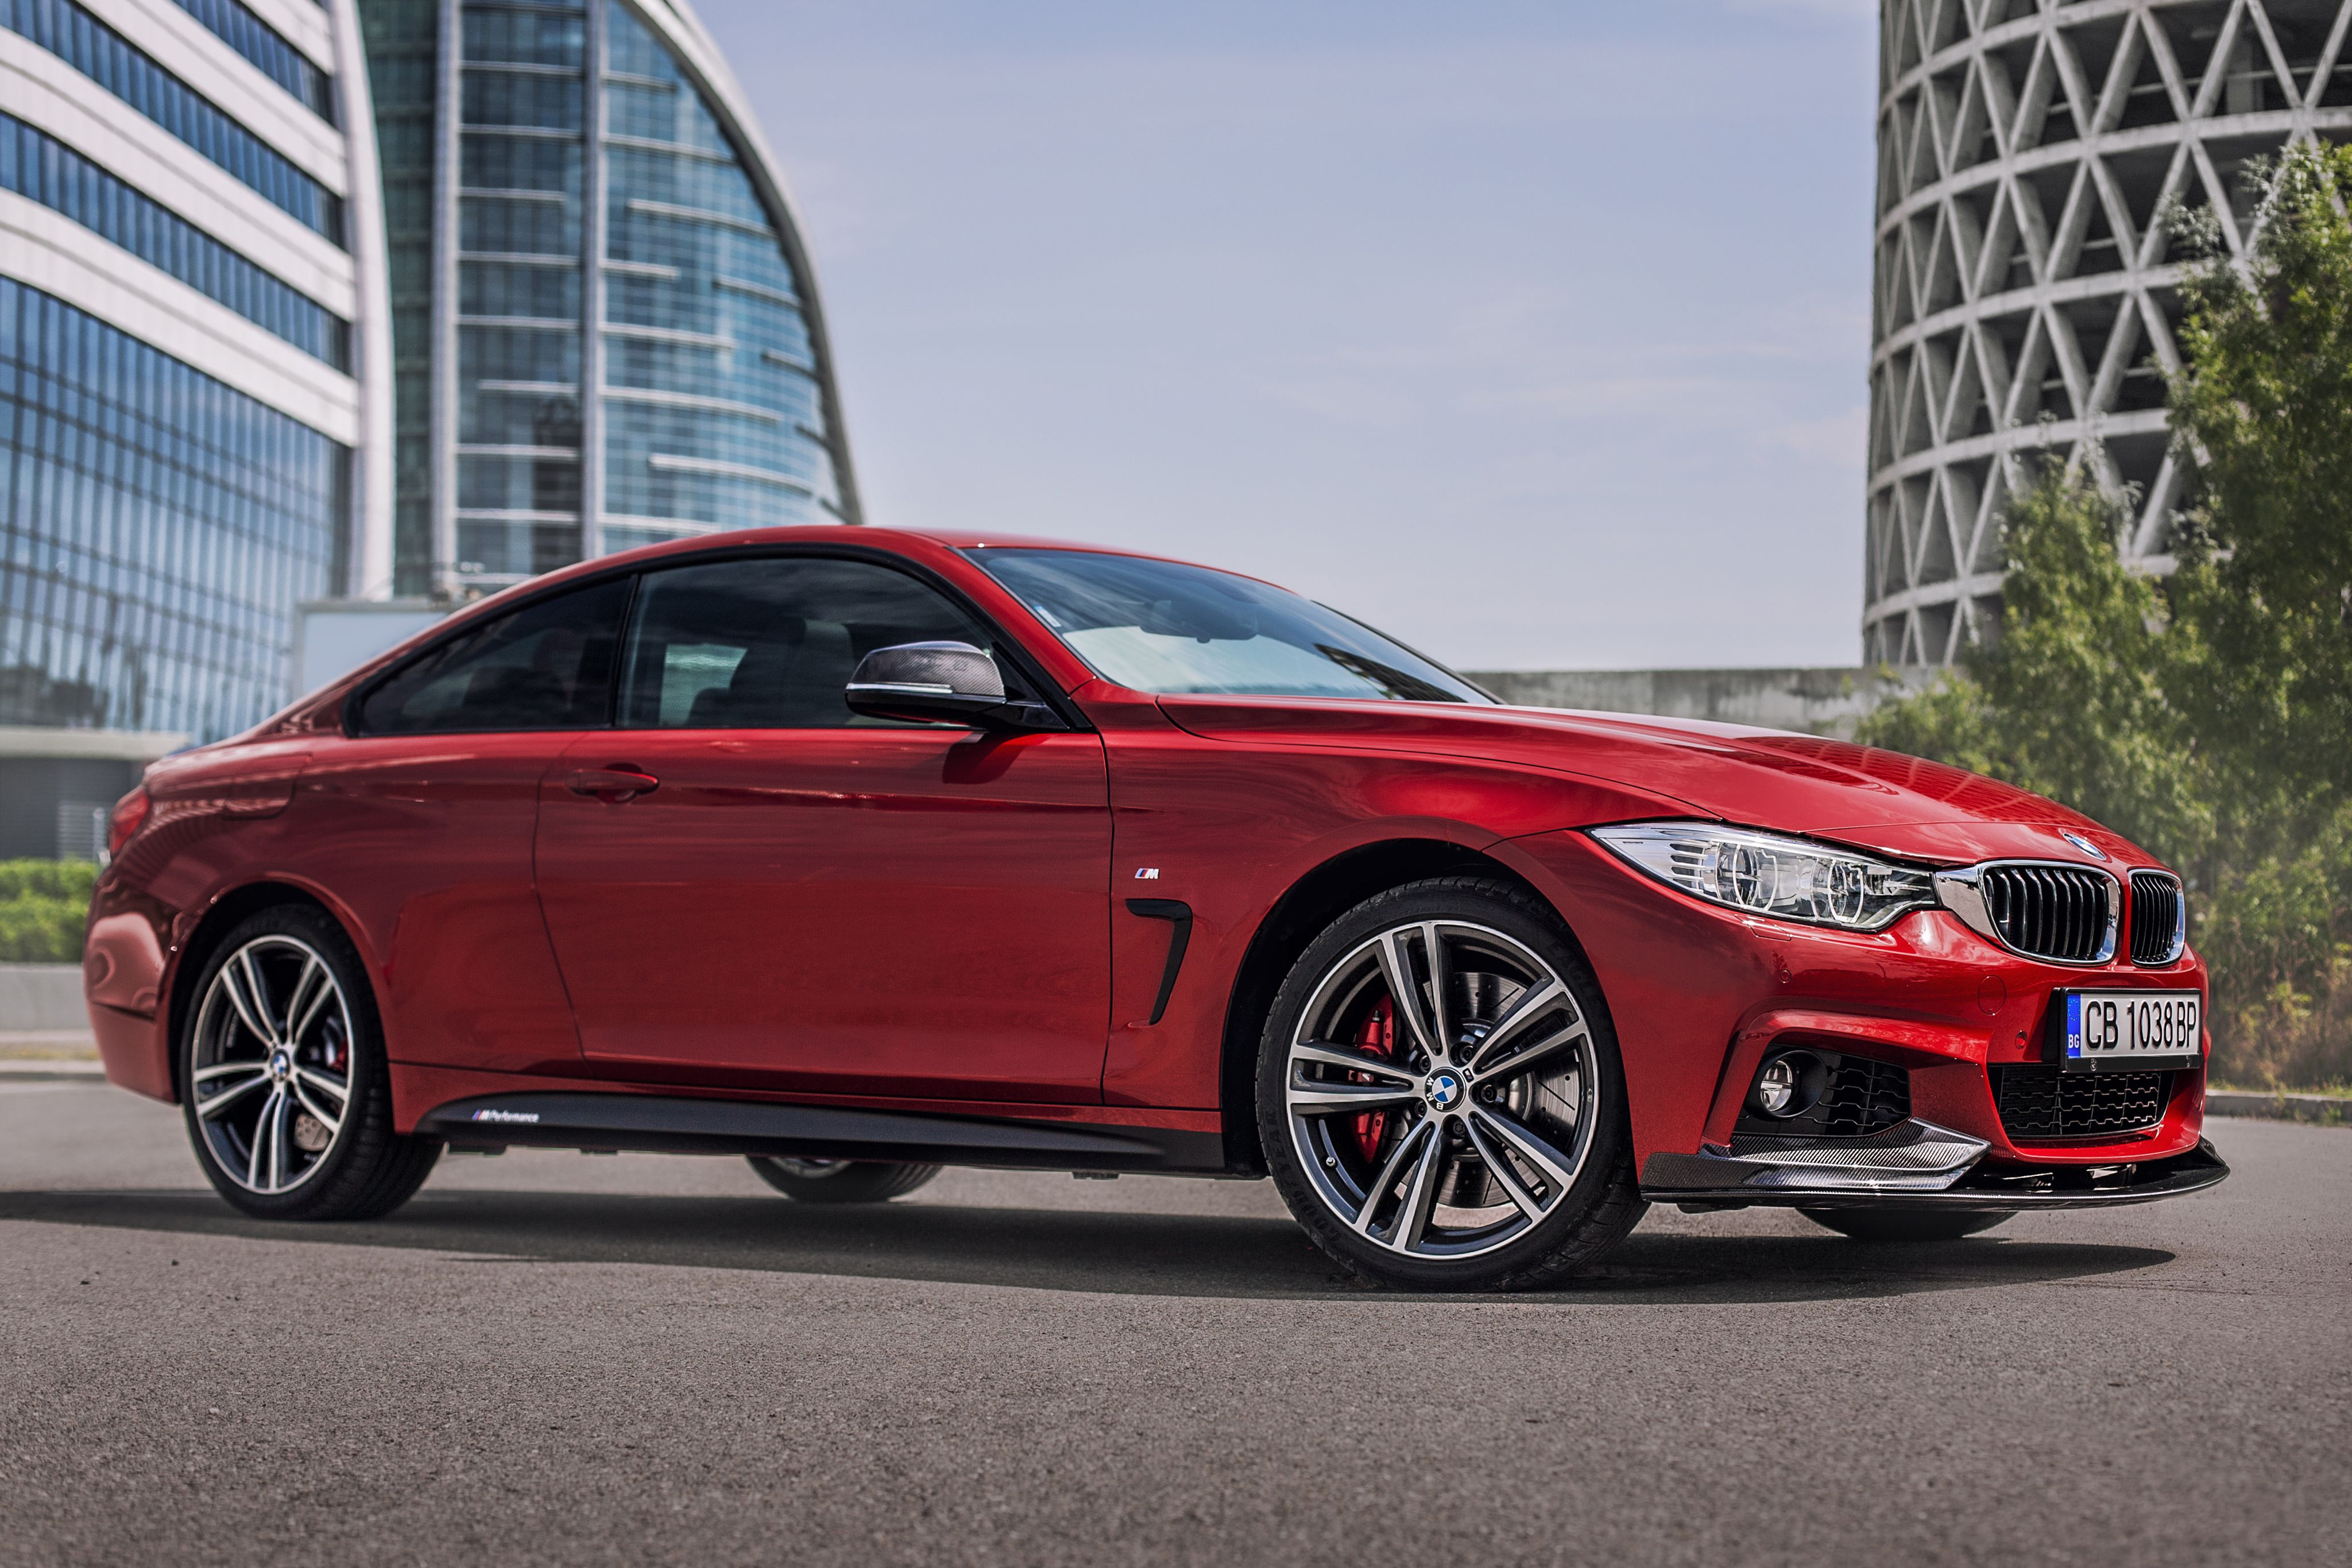 bmw f32 440i coupe xdrive mpackage rededition mperformance bmw 4ever pinterest bmw and. Black Bedroom Furniture Sets. Home Design Ideas